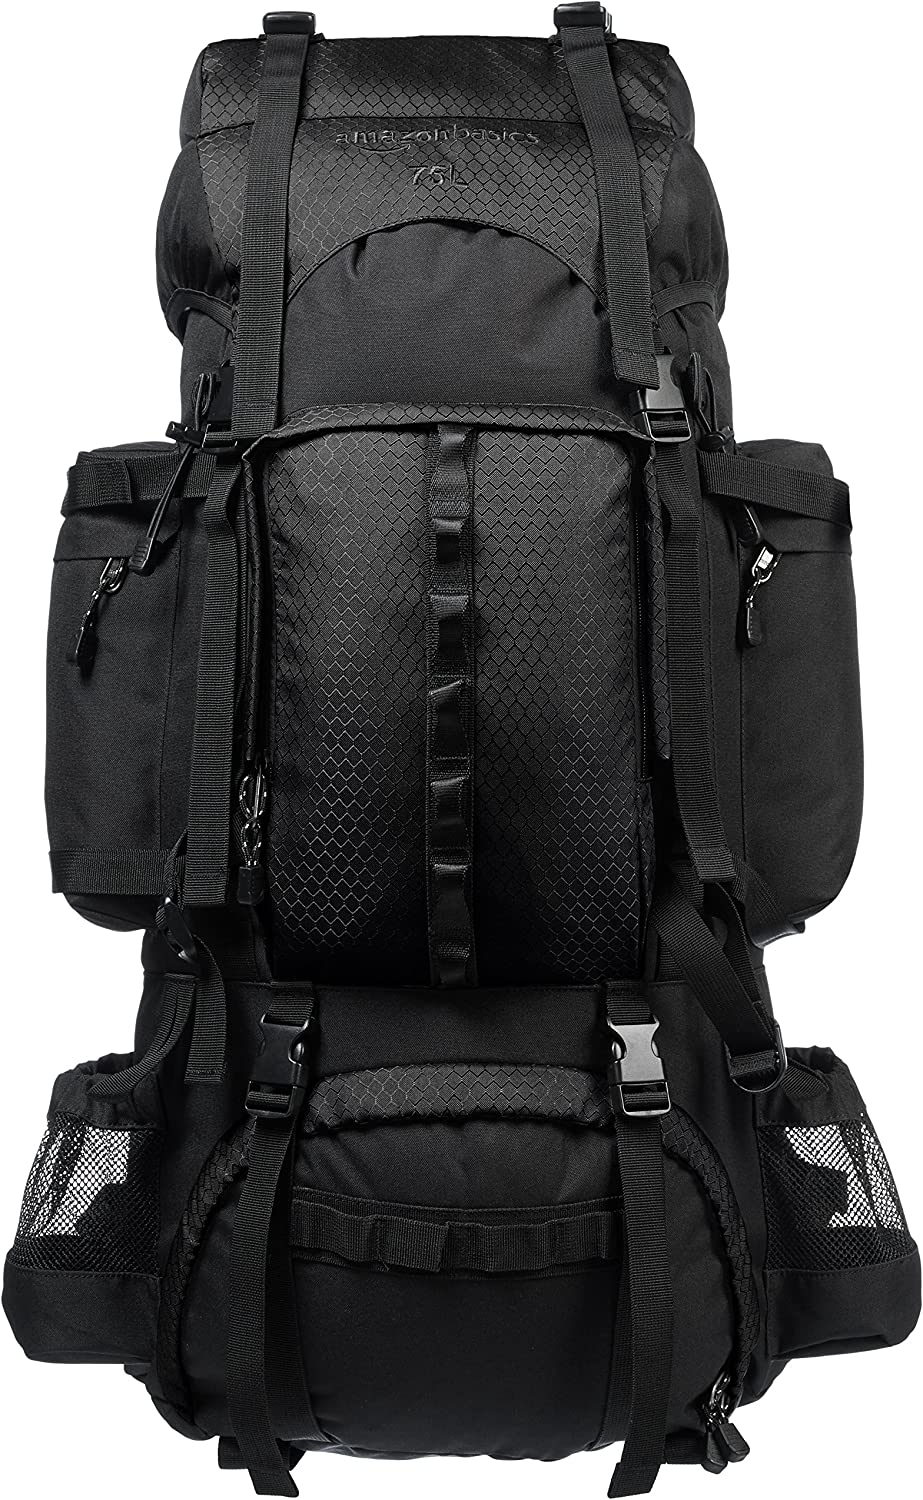 AmazonBasics Hiking Backpack with Rainfly